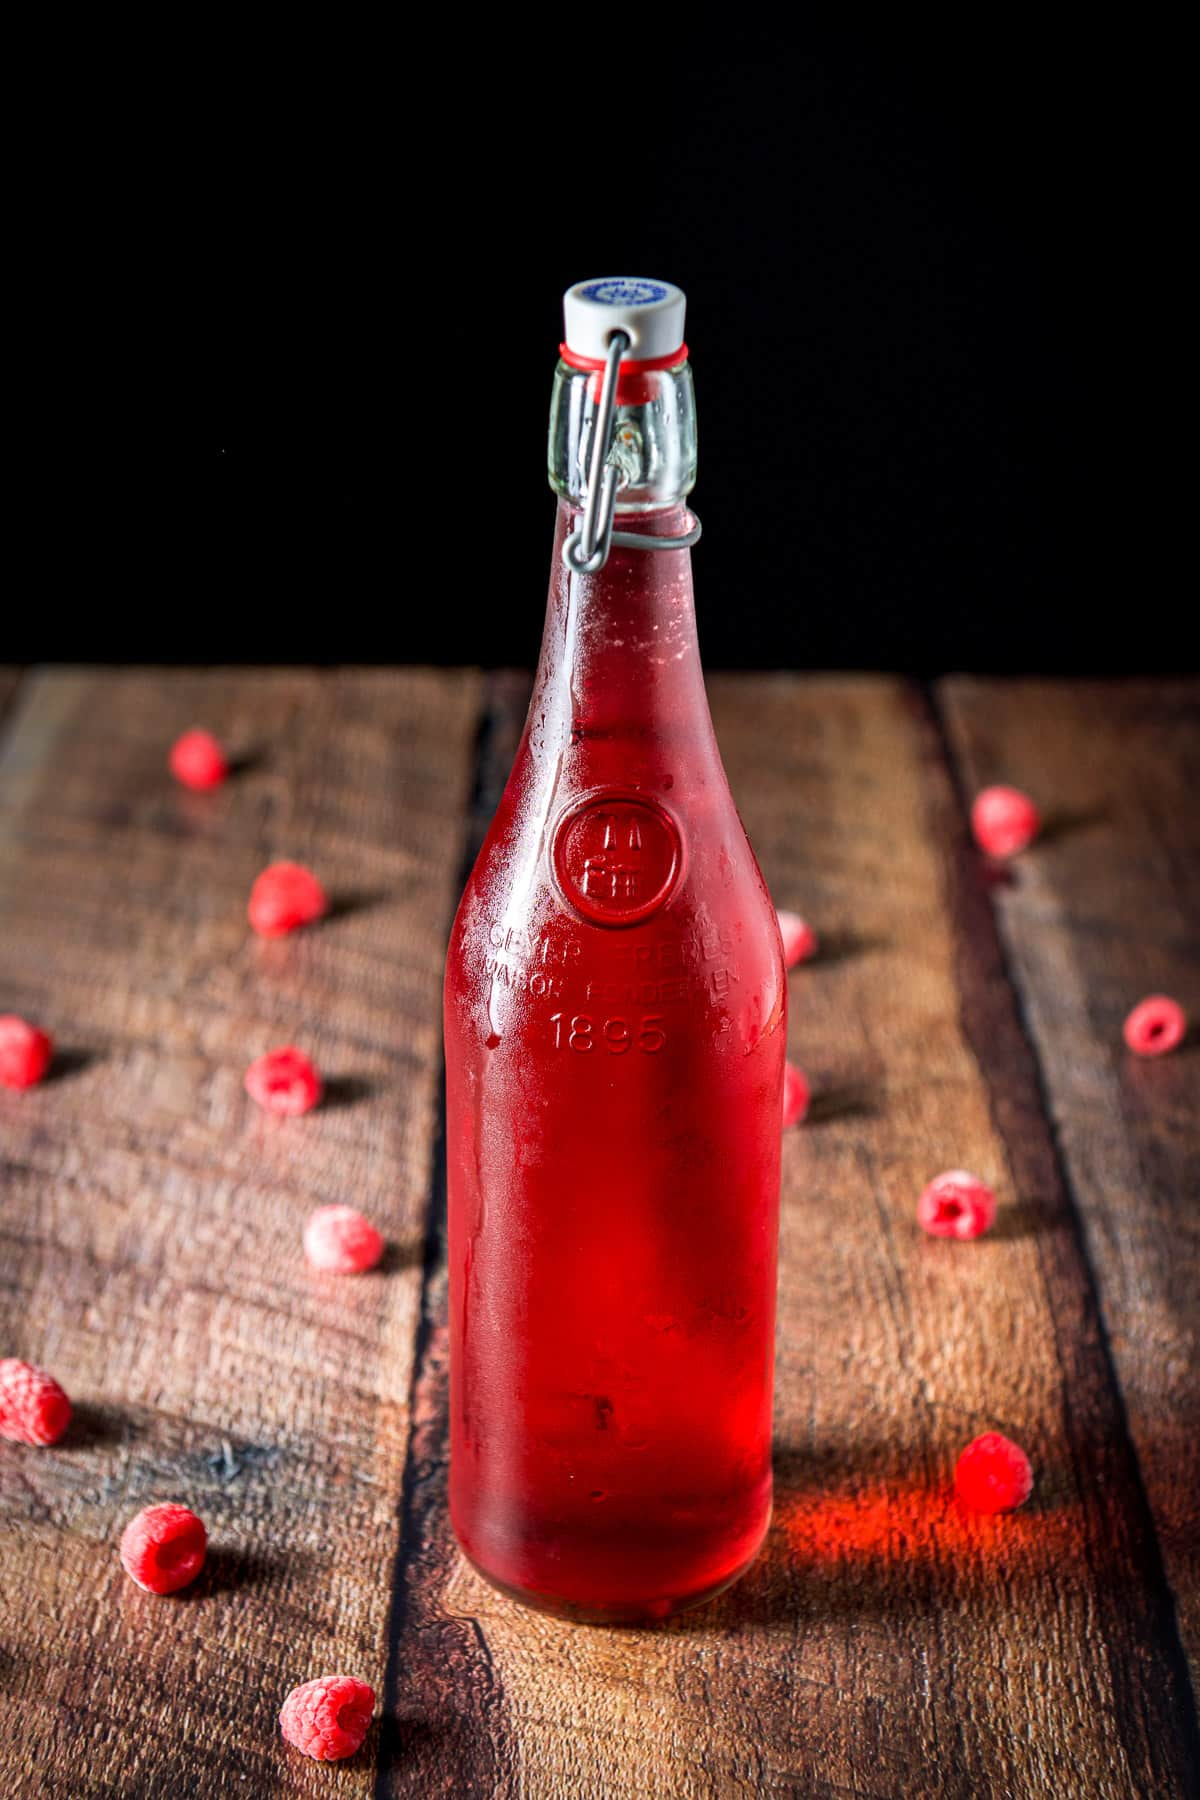 Raspberries on a table with the bottle of red vodka